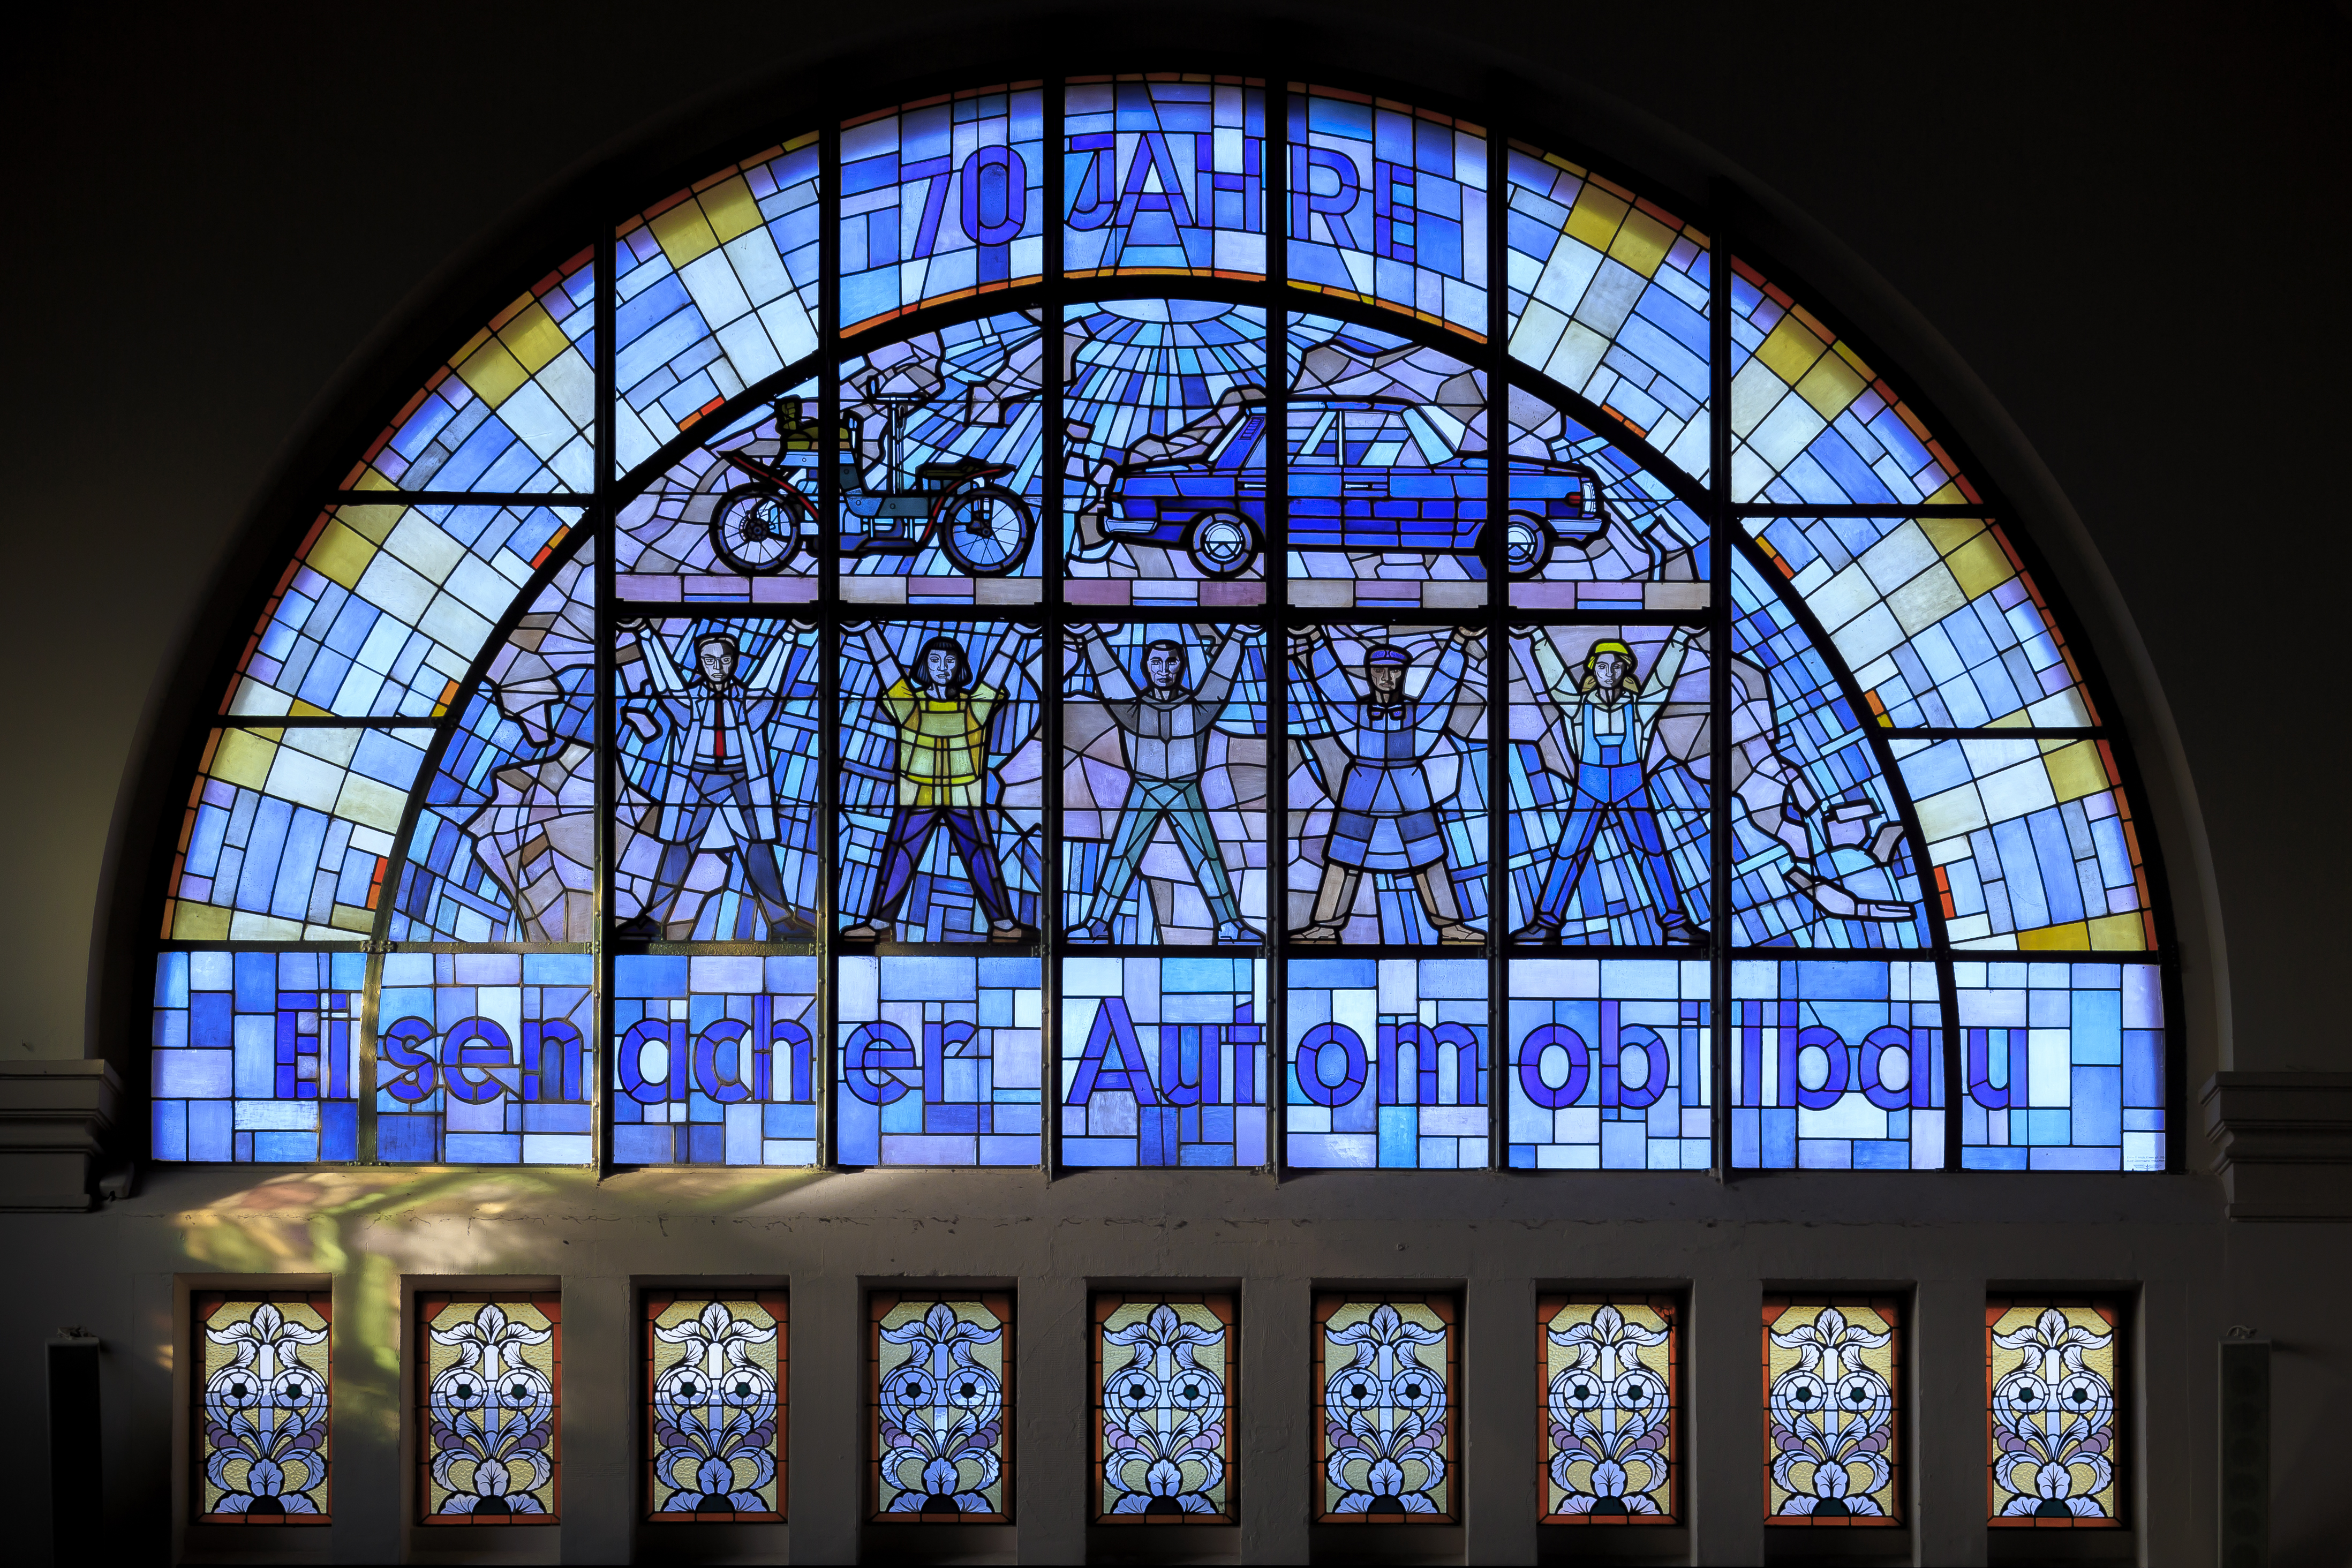 Bestandeisenach Germany Stained Glass Windows In Railway Station 01